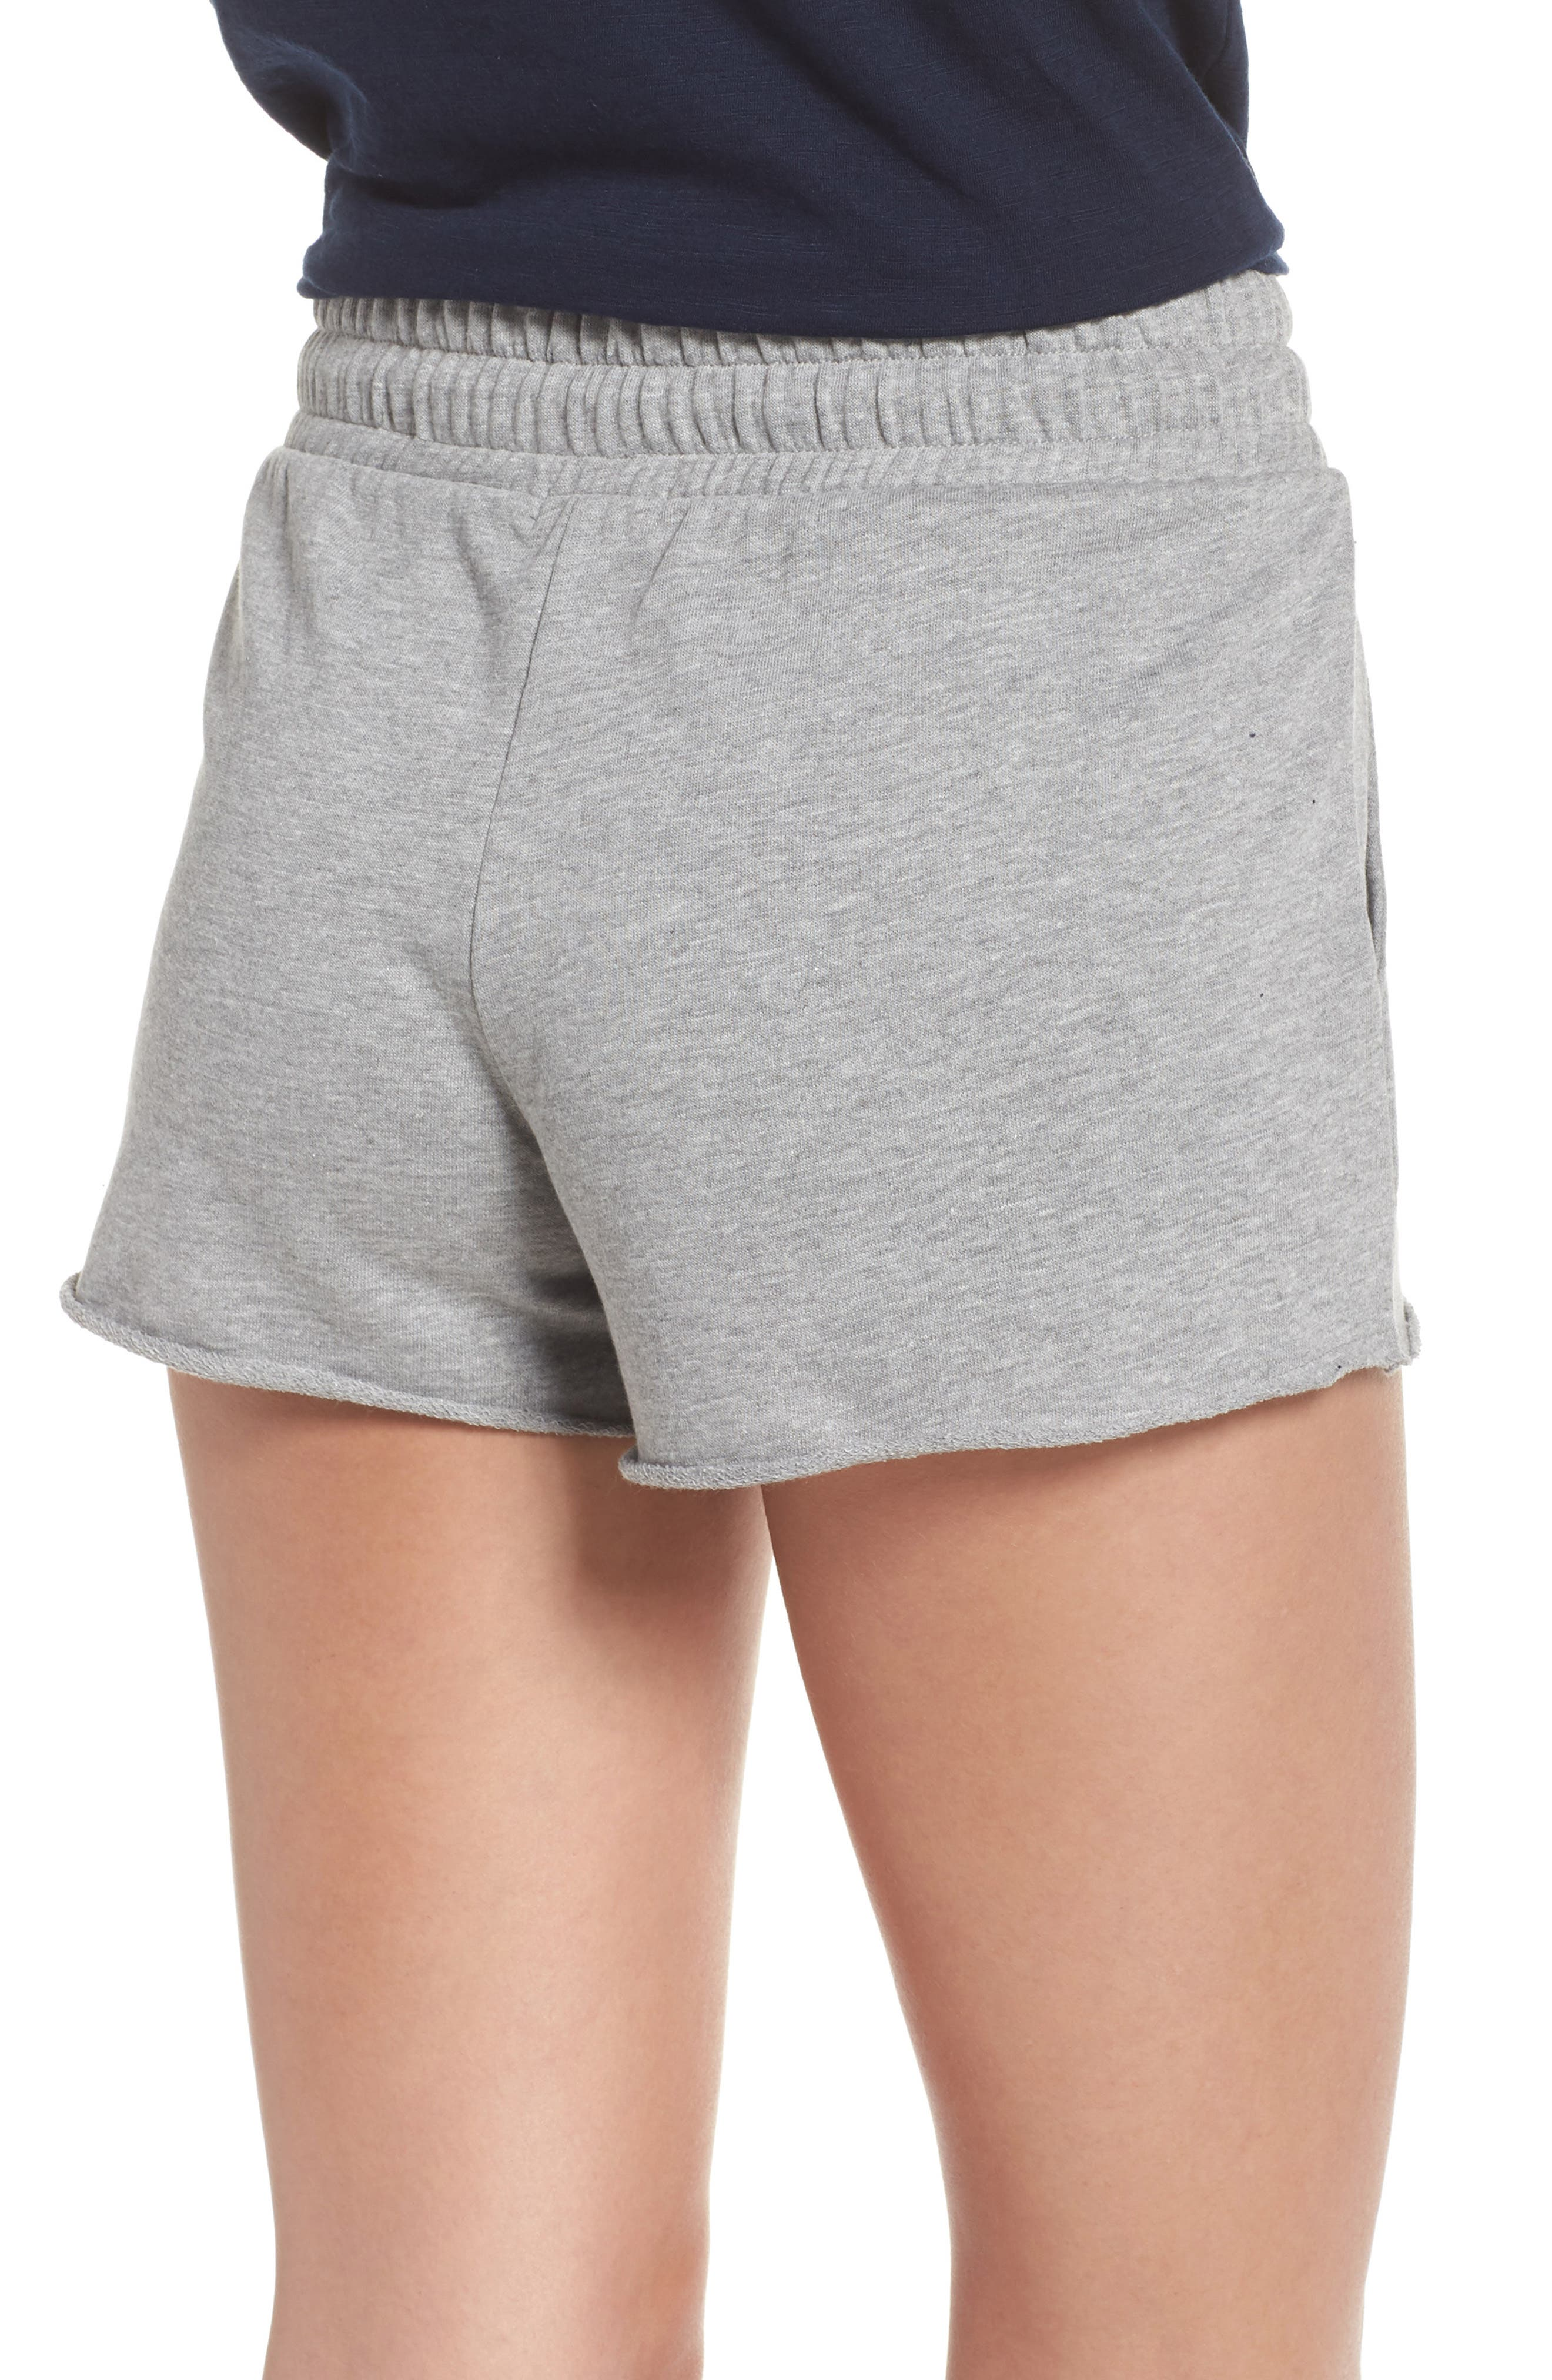 Raw Edge Pajama Shorts,                             Alternate thumbnail 2, color,                             020